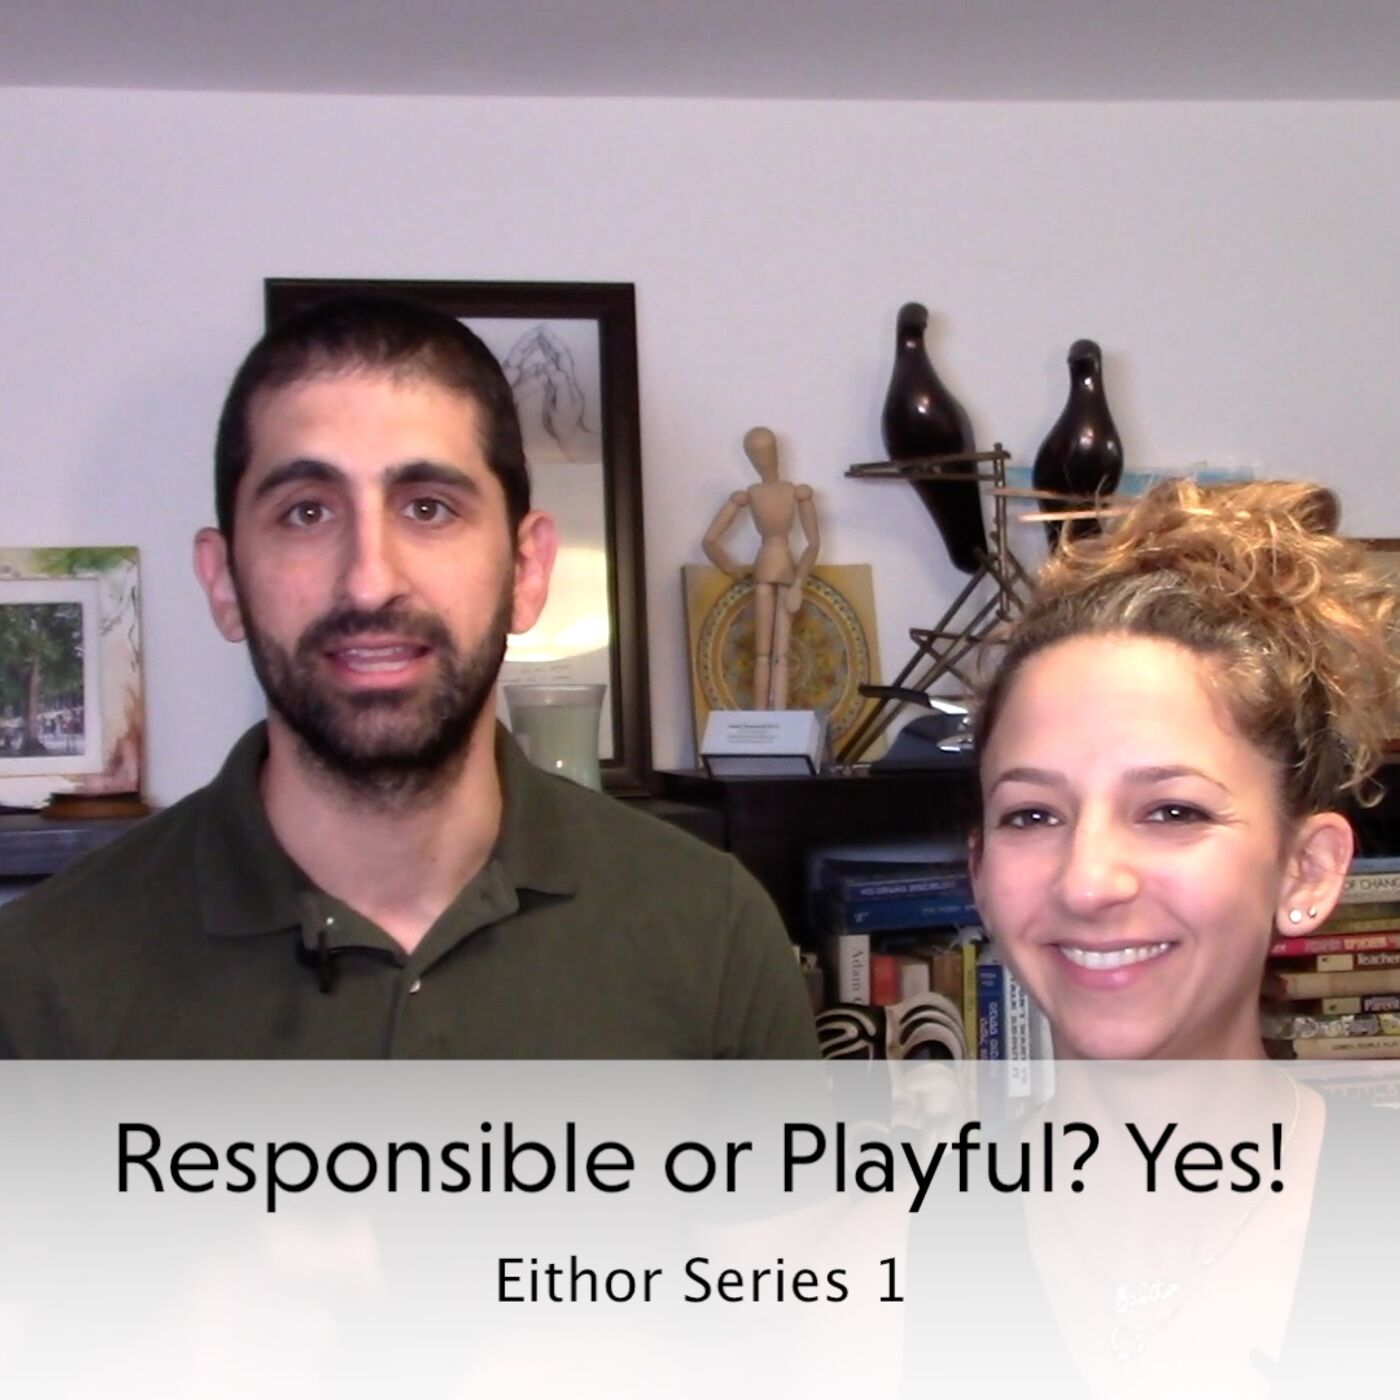 """Eithor"" Series 1 - Responsible or Playful? Yes!"